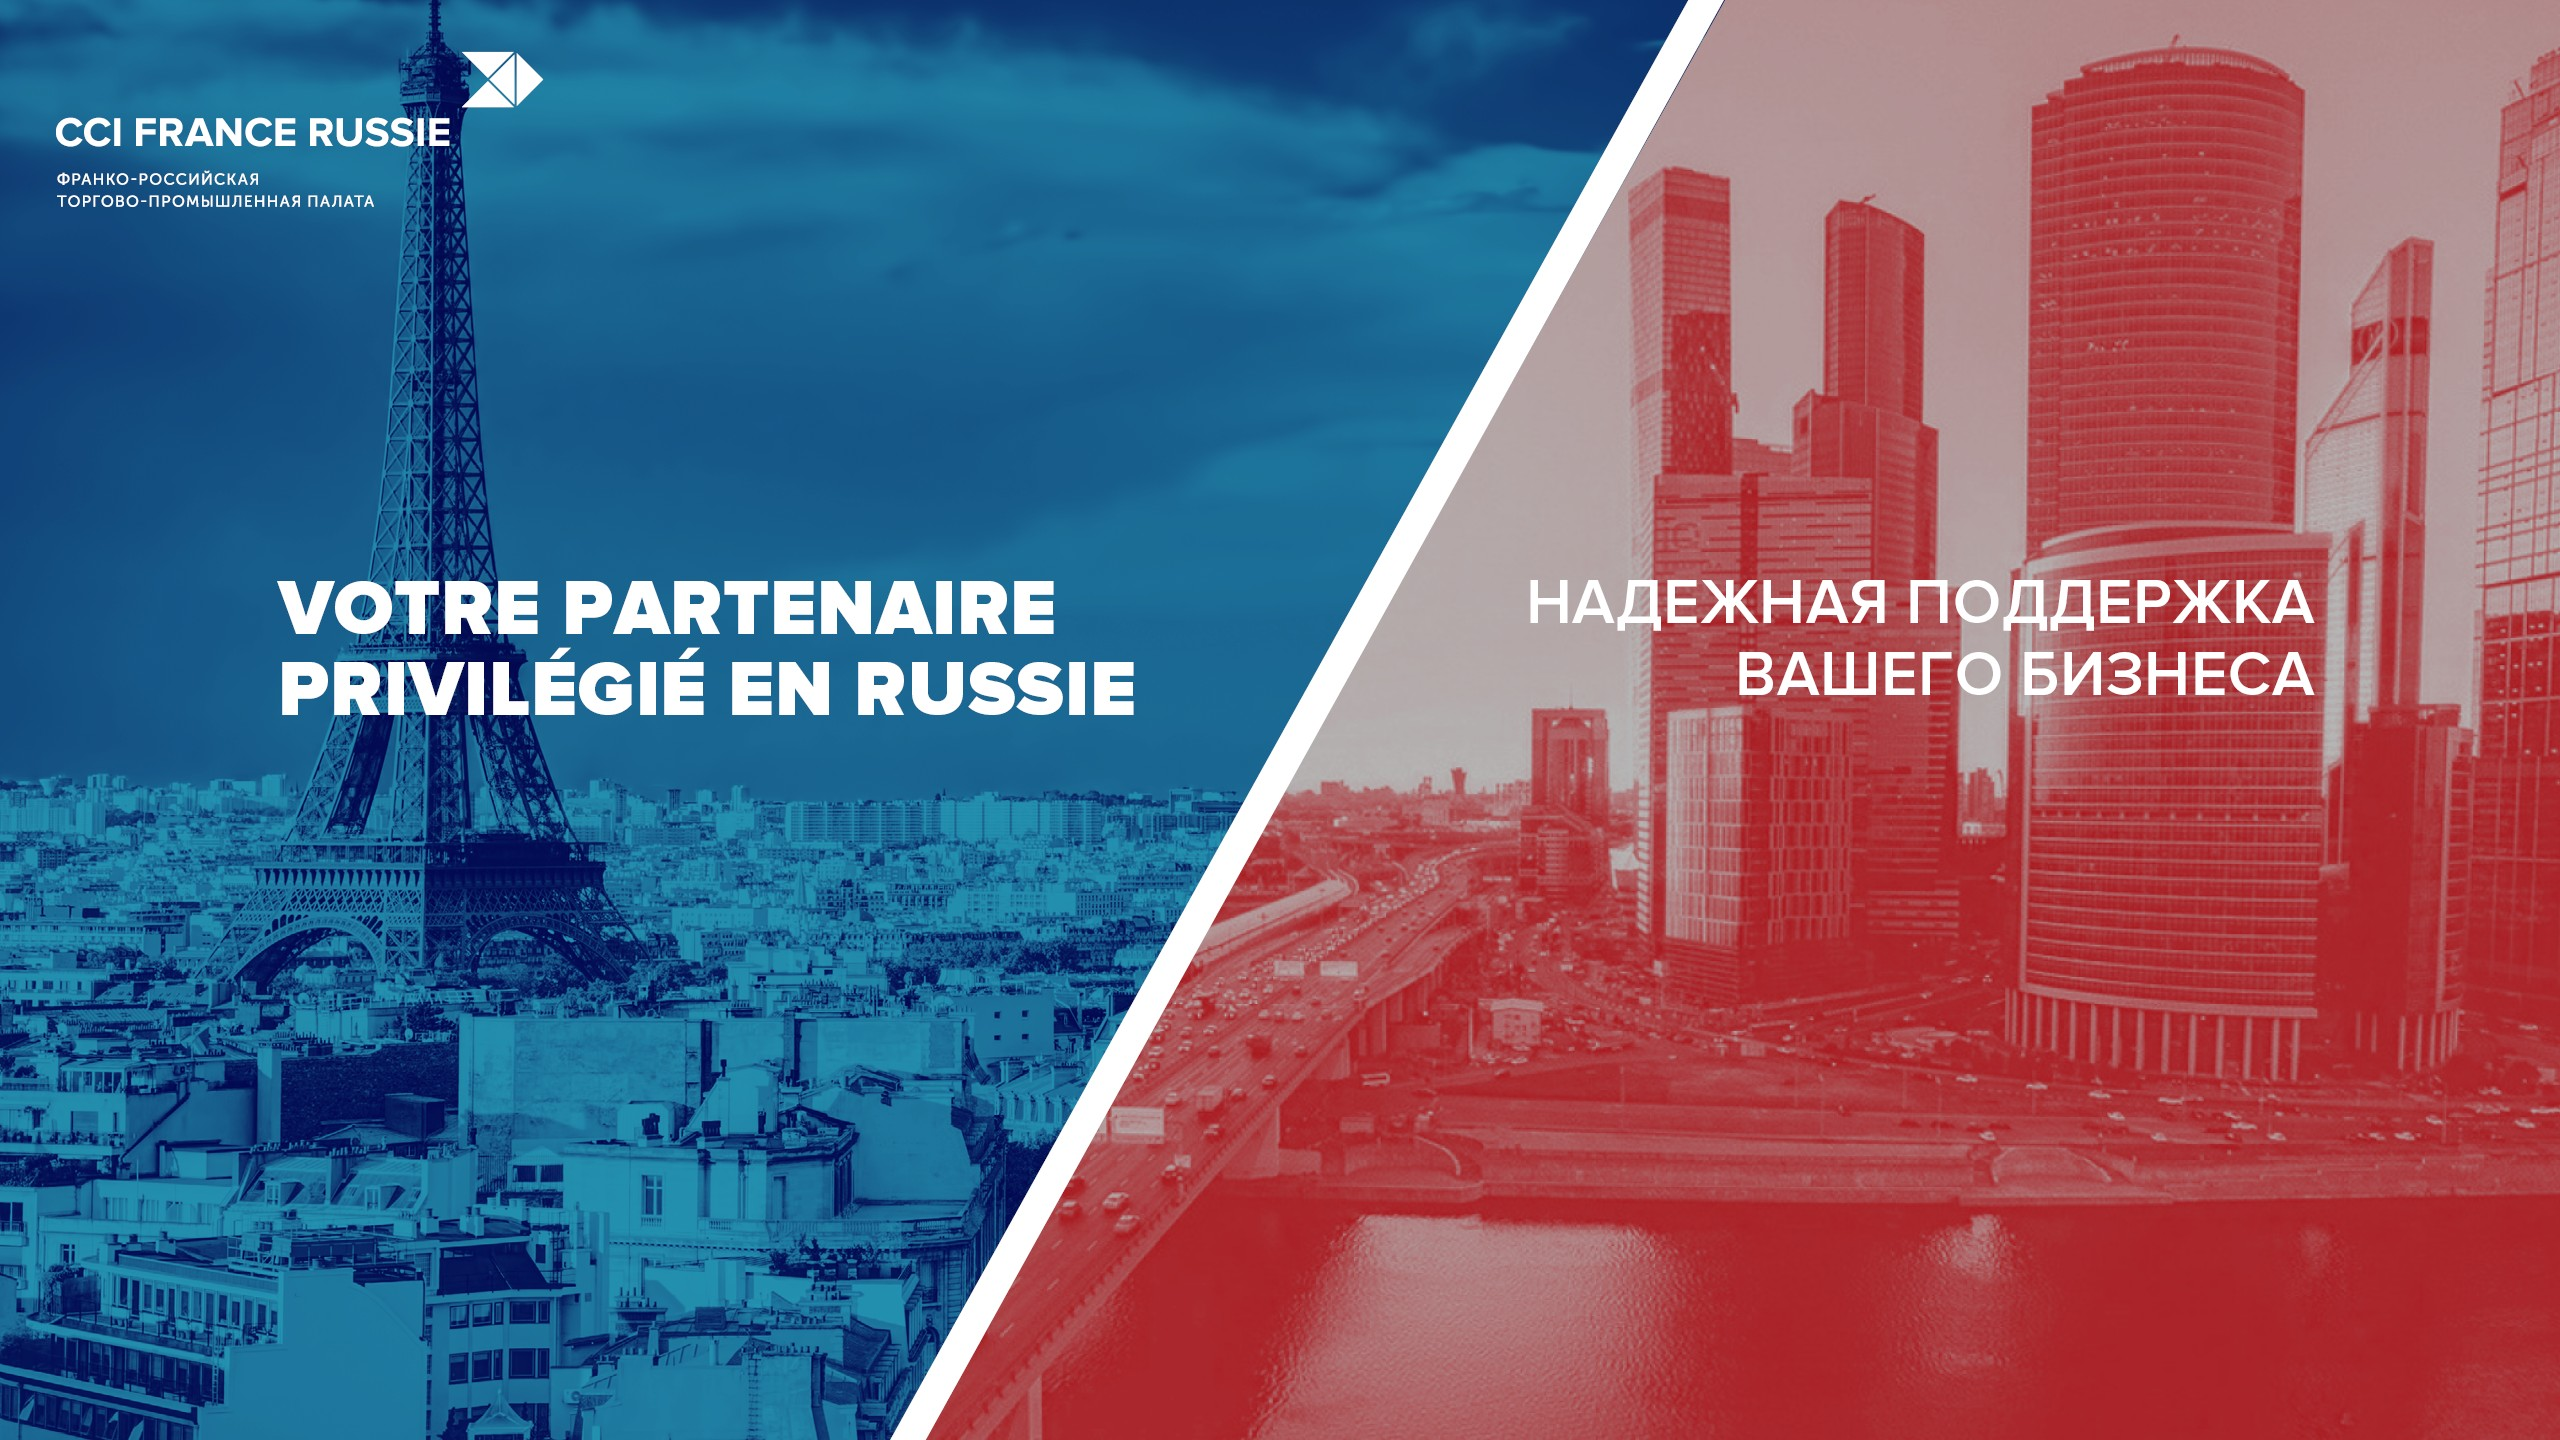 Franco Russian Chamber Of Commerce And Industry Cci France